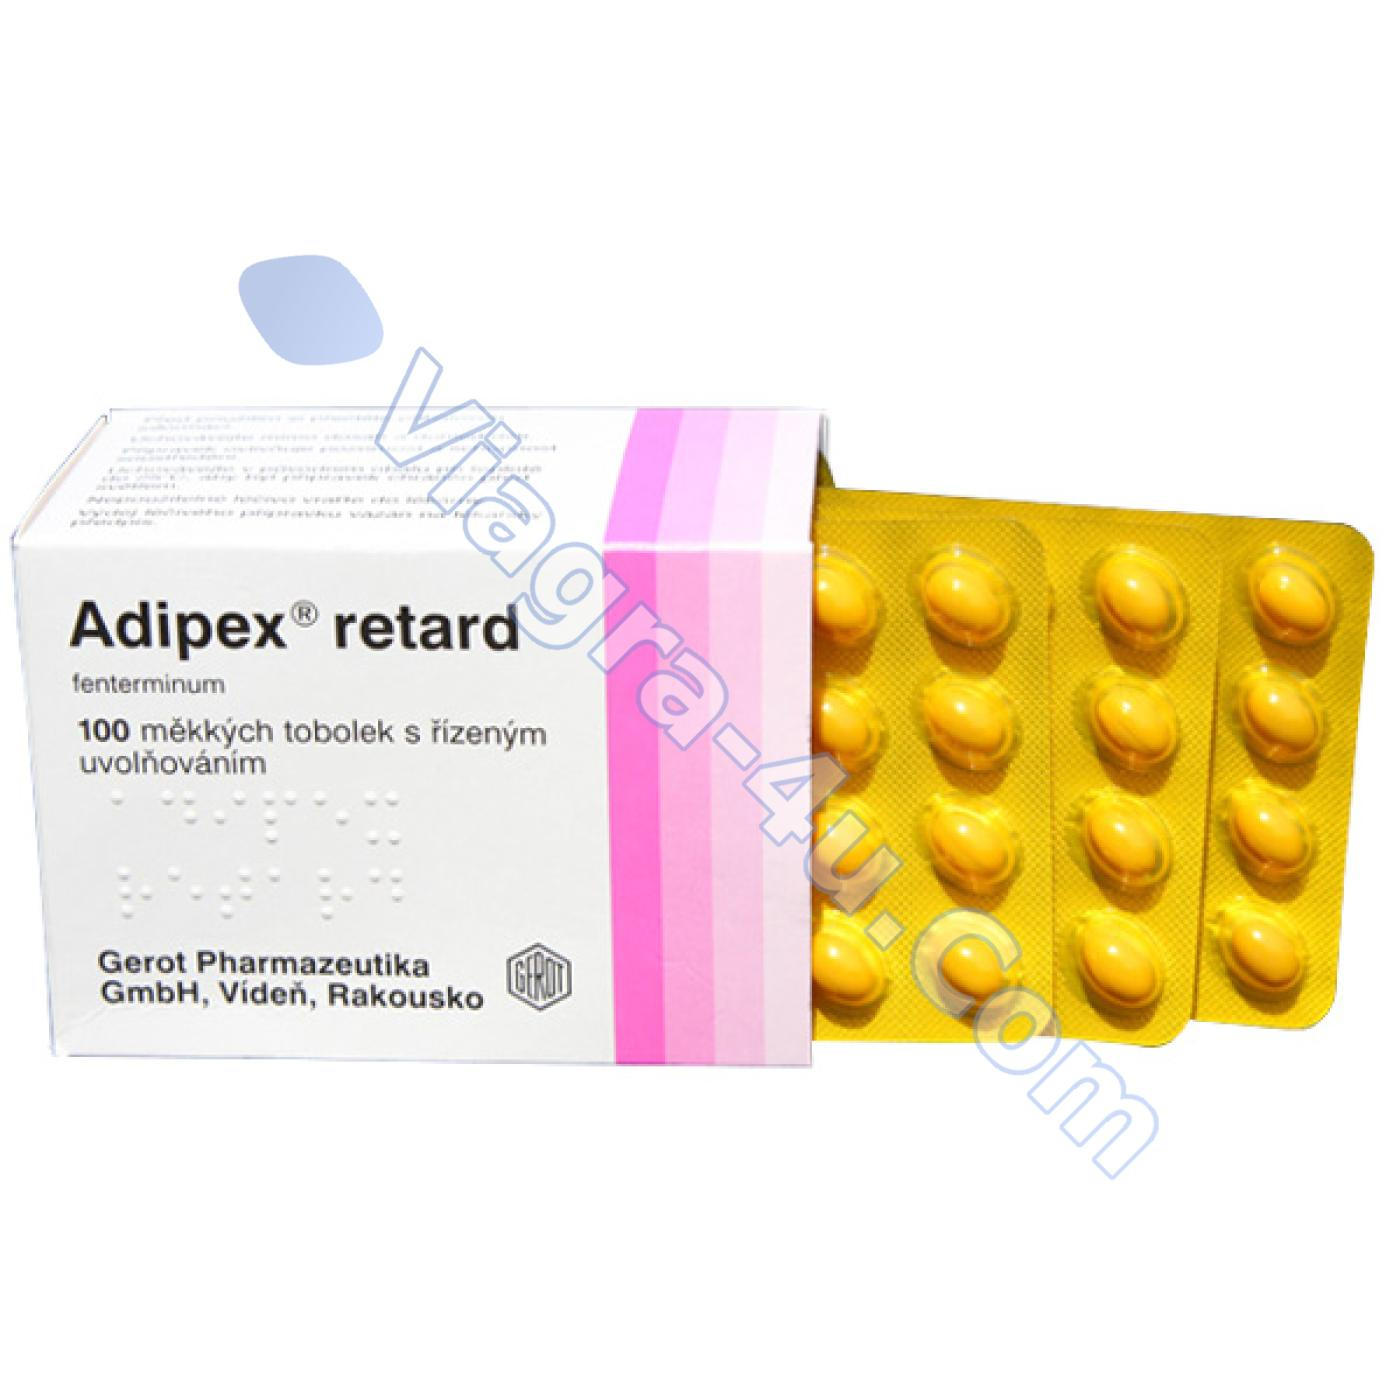 Phentermine 15 Mg Cost ‒ cashcarrental.net